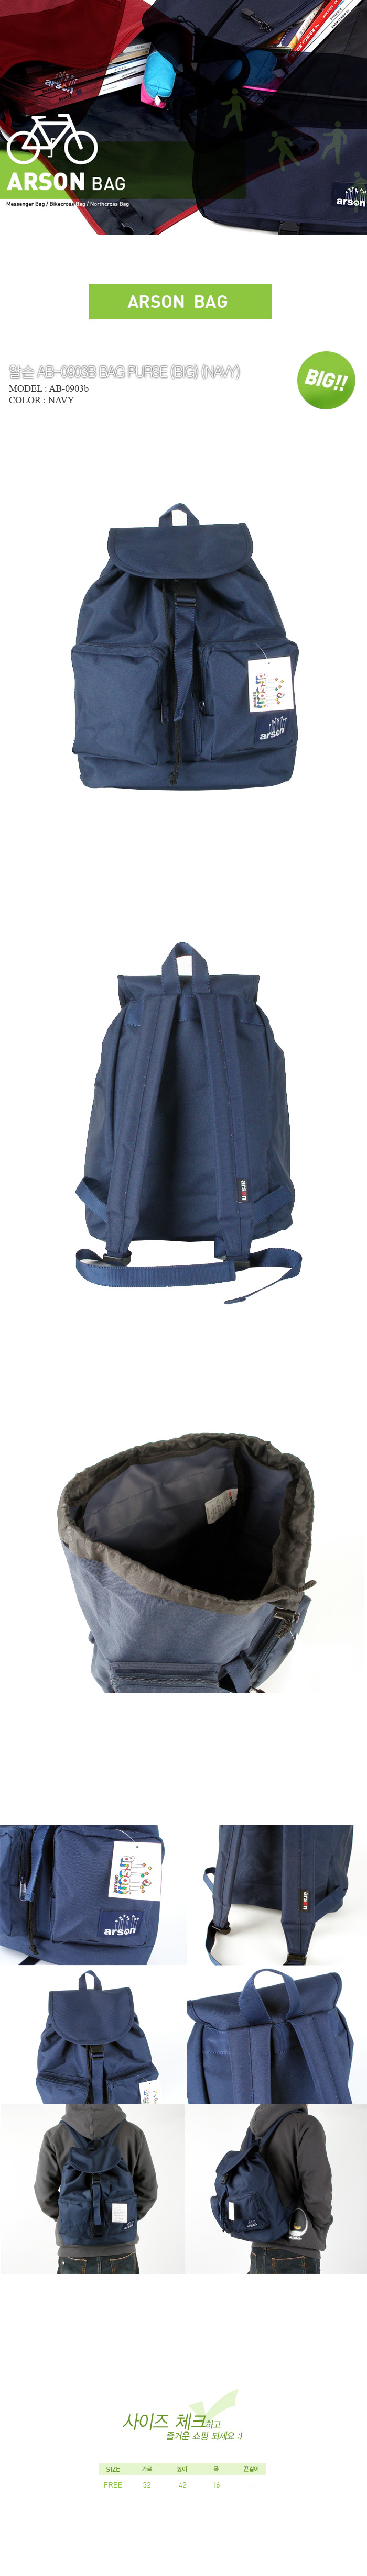 [ ARSON ] AB-0903(B) Big (Navy)/Backpack School Bag